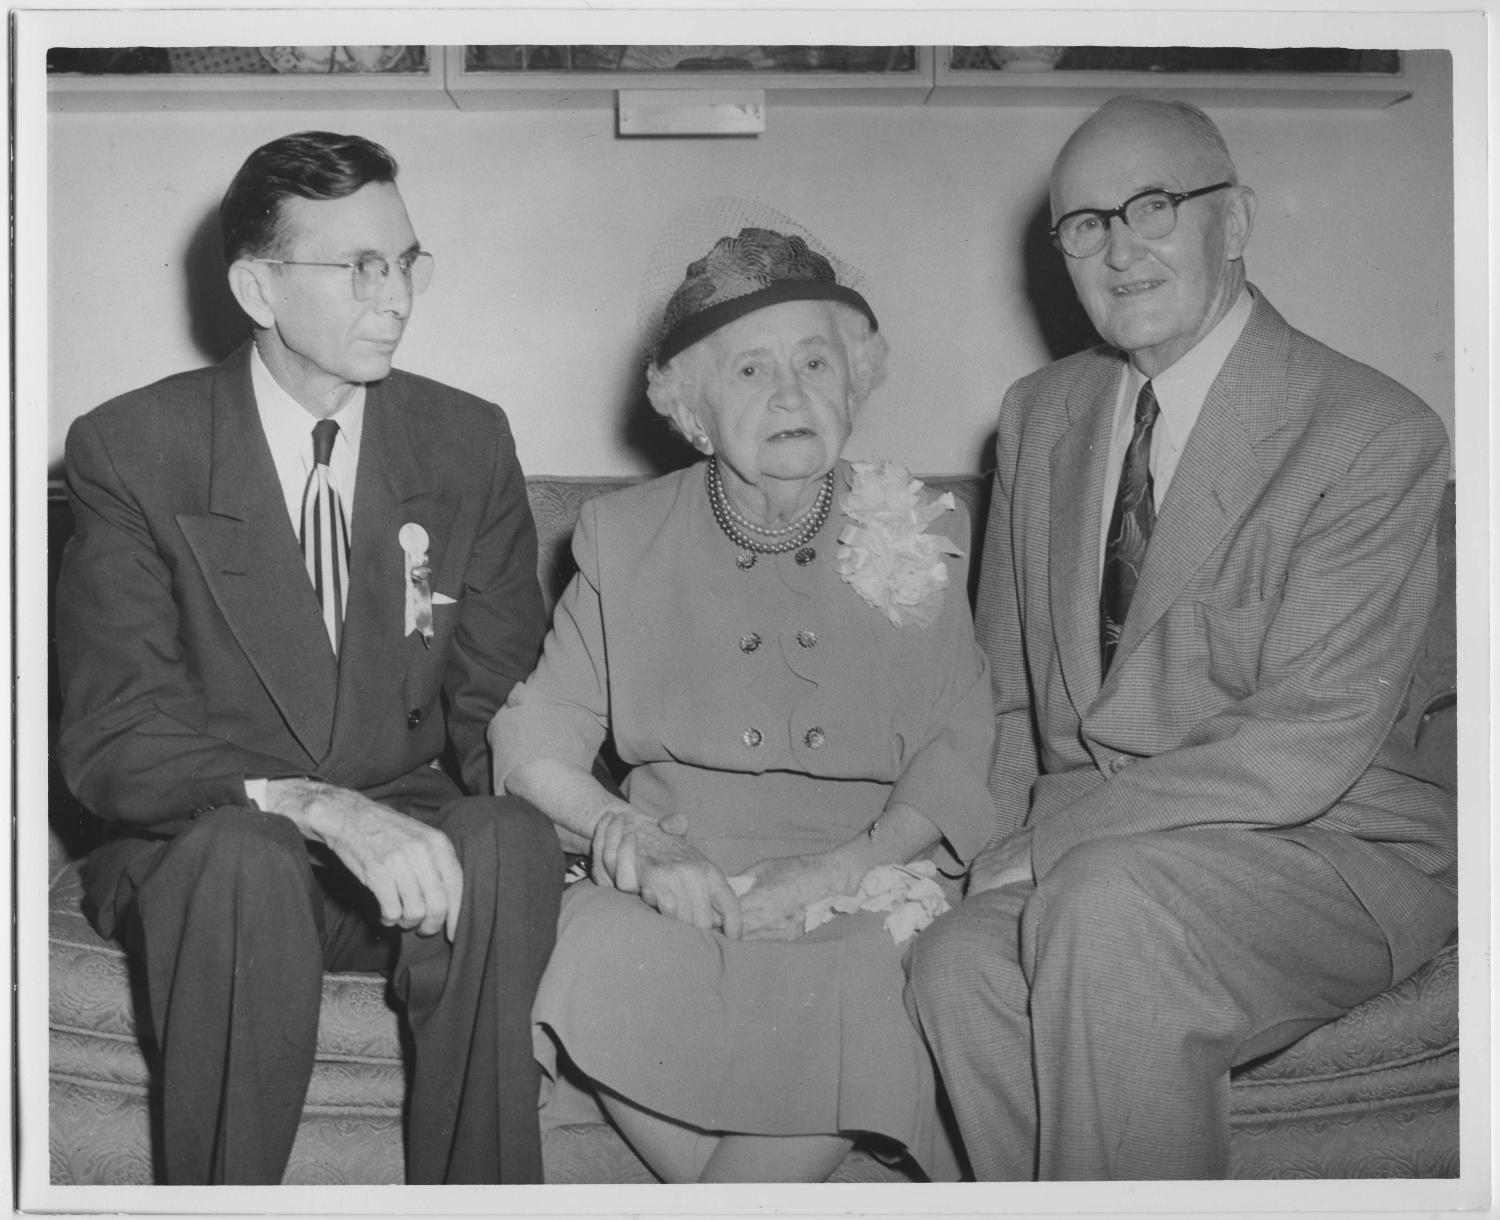 Black and white photo of an elderly woman seated between two men in suits. She wears and dress and hat.